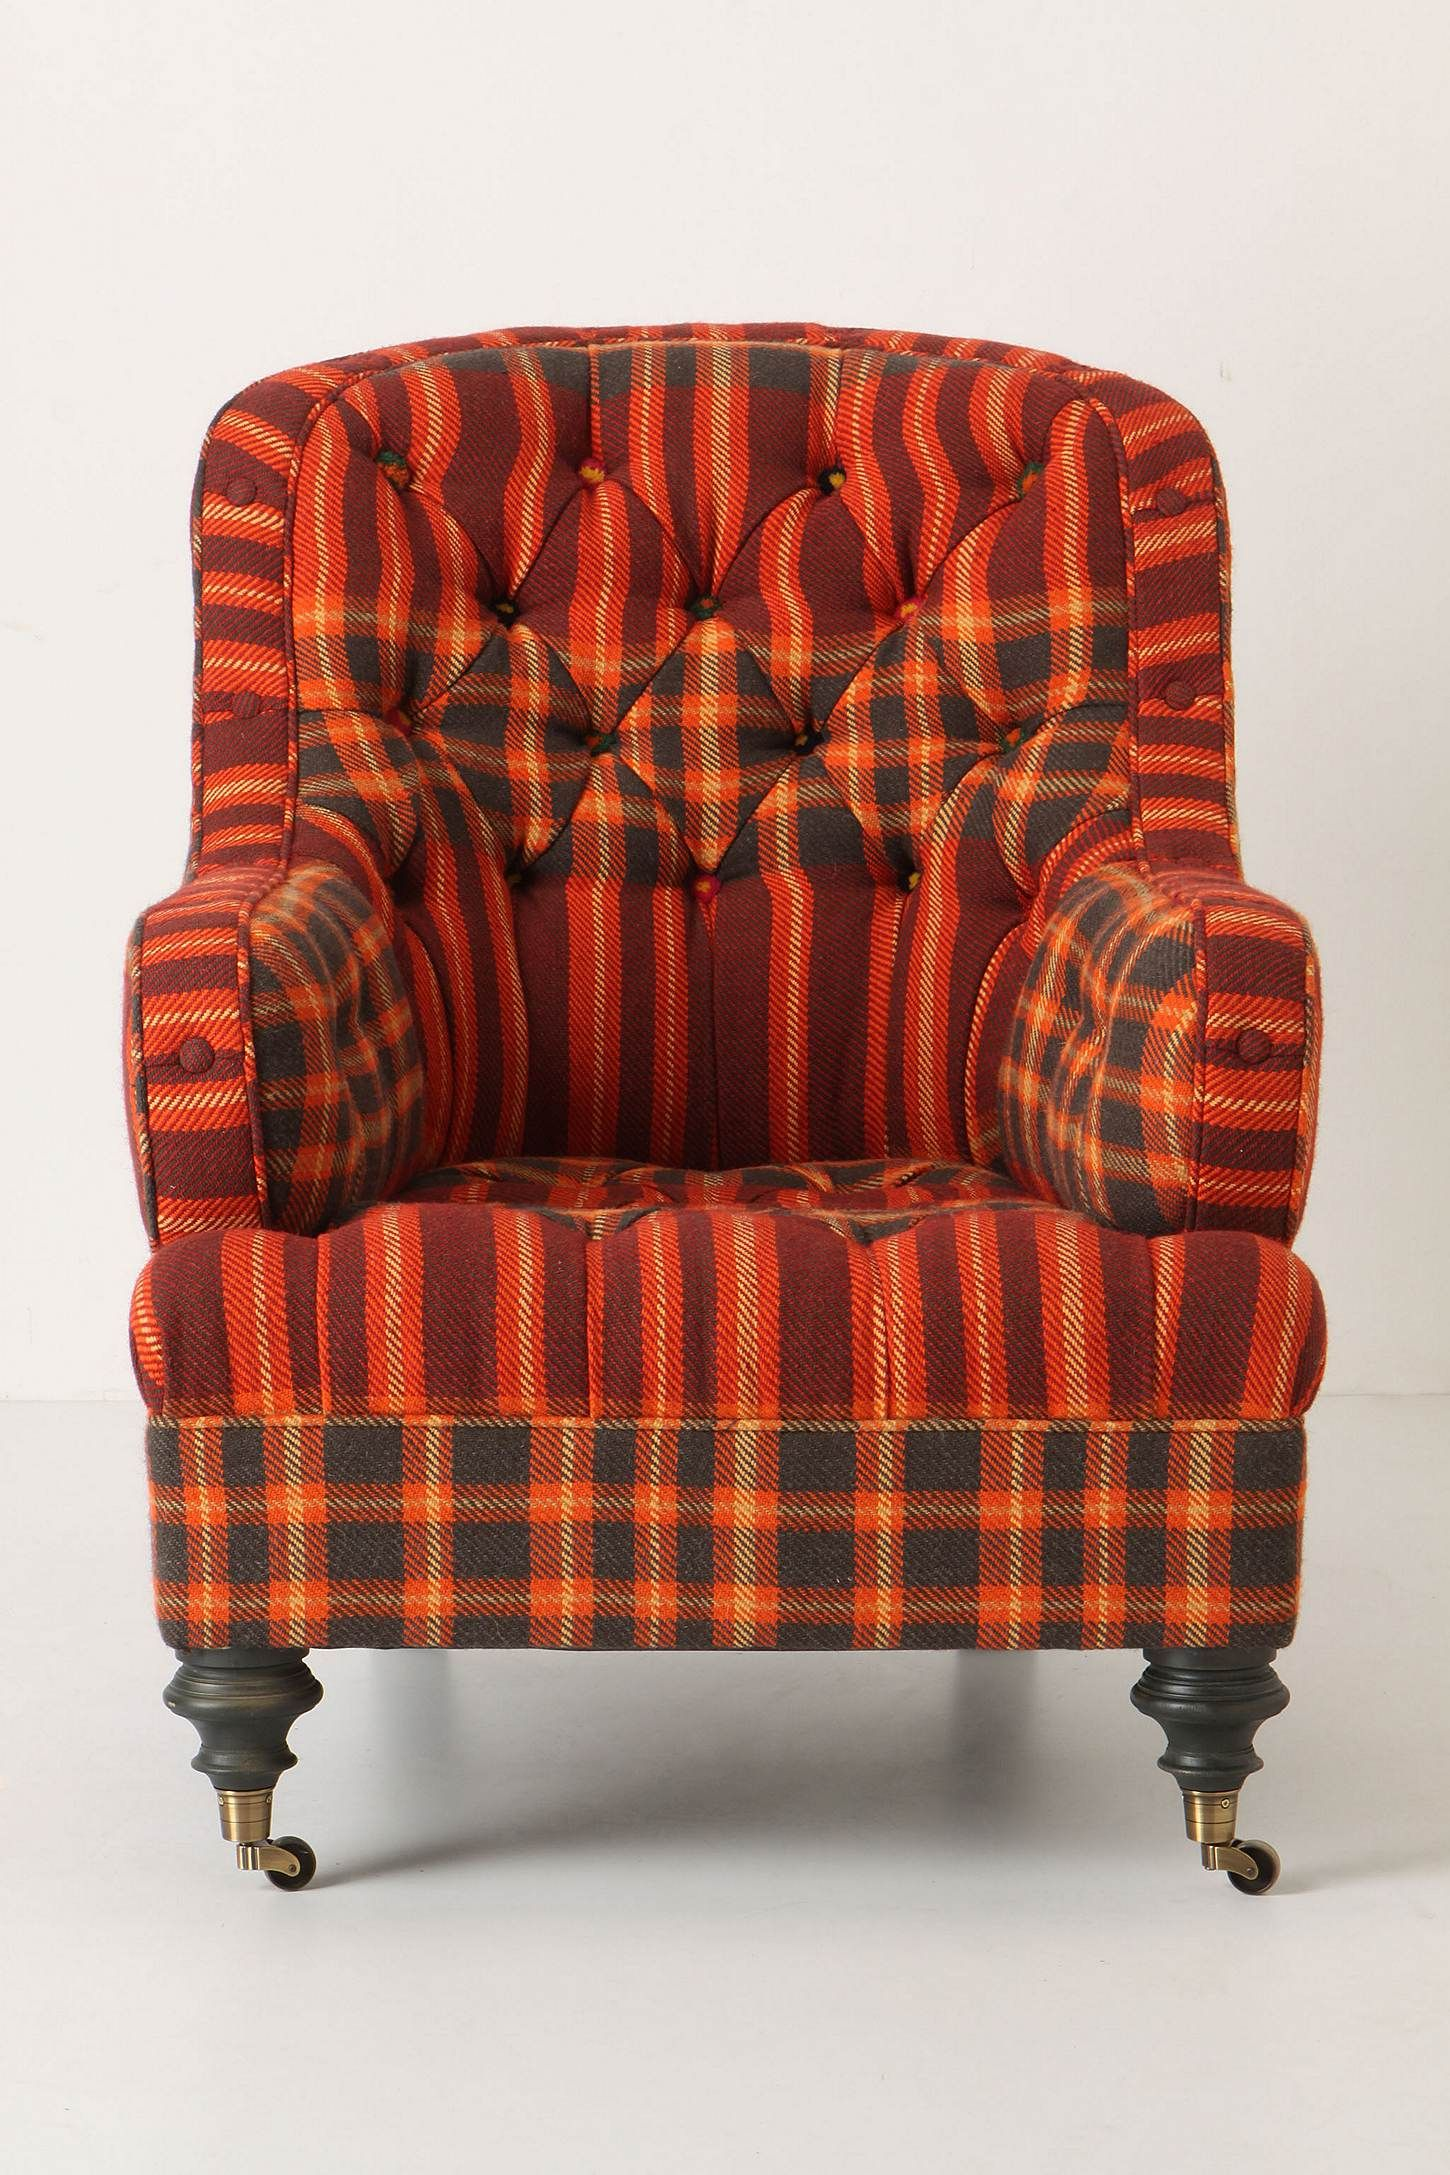 Plaid Chair Mad For Plaid Ya 39ll And Big Comfy Chairs Have A Seat